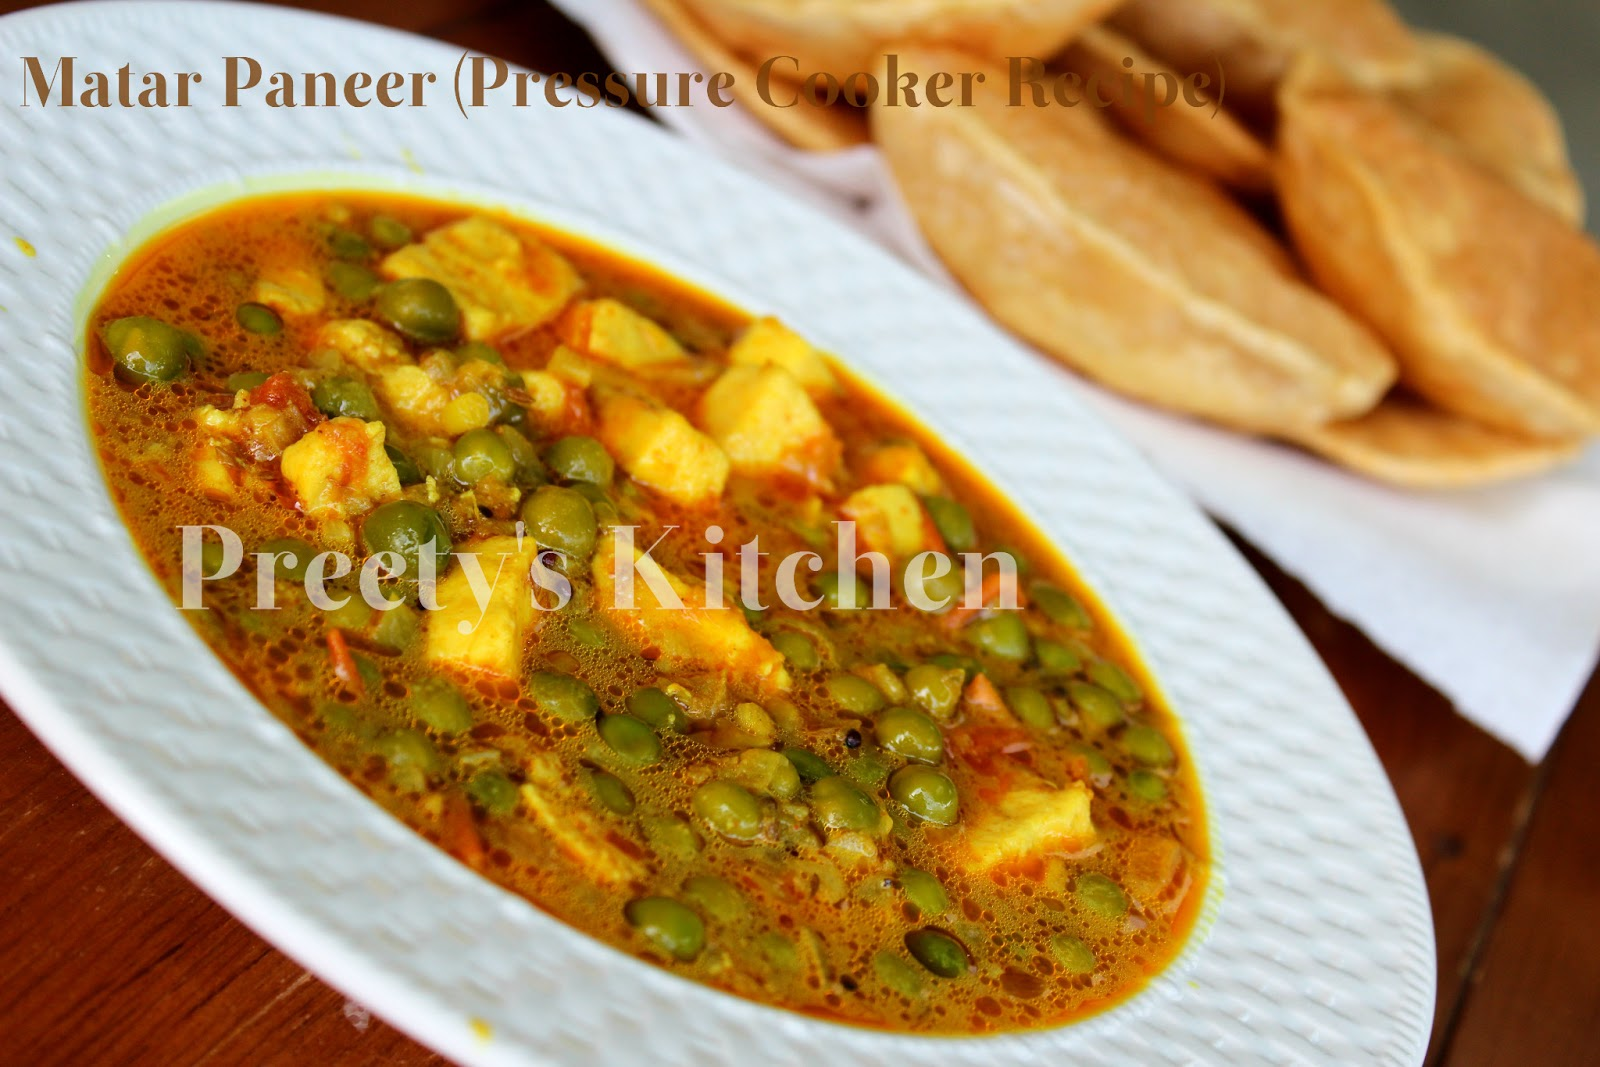 Preetys kitchen matar paneer indian cottage cheese peas curry matar paneer indian cottage cheese peas curry pressure cooker recipe forumfinder Gallery